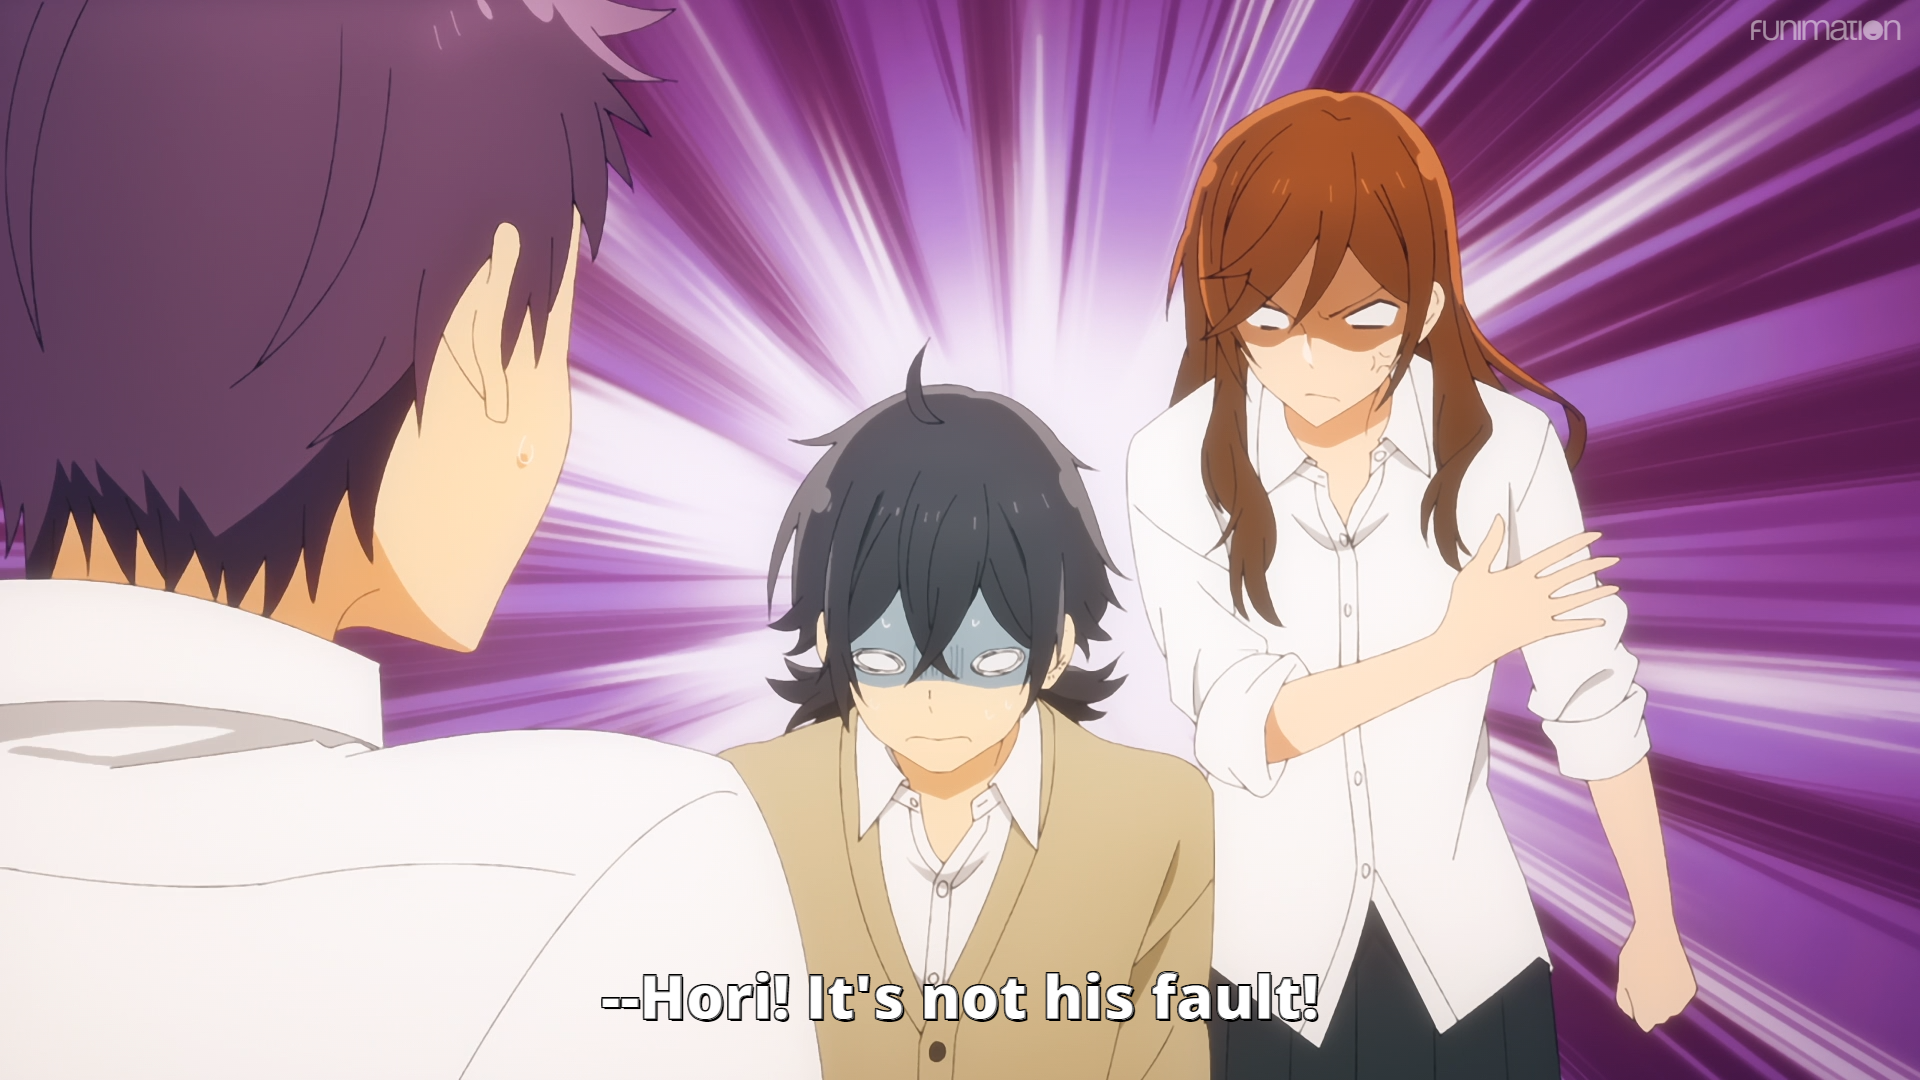 Horimiya Season 1 Episode 9 - Not Miyamura's fault